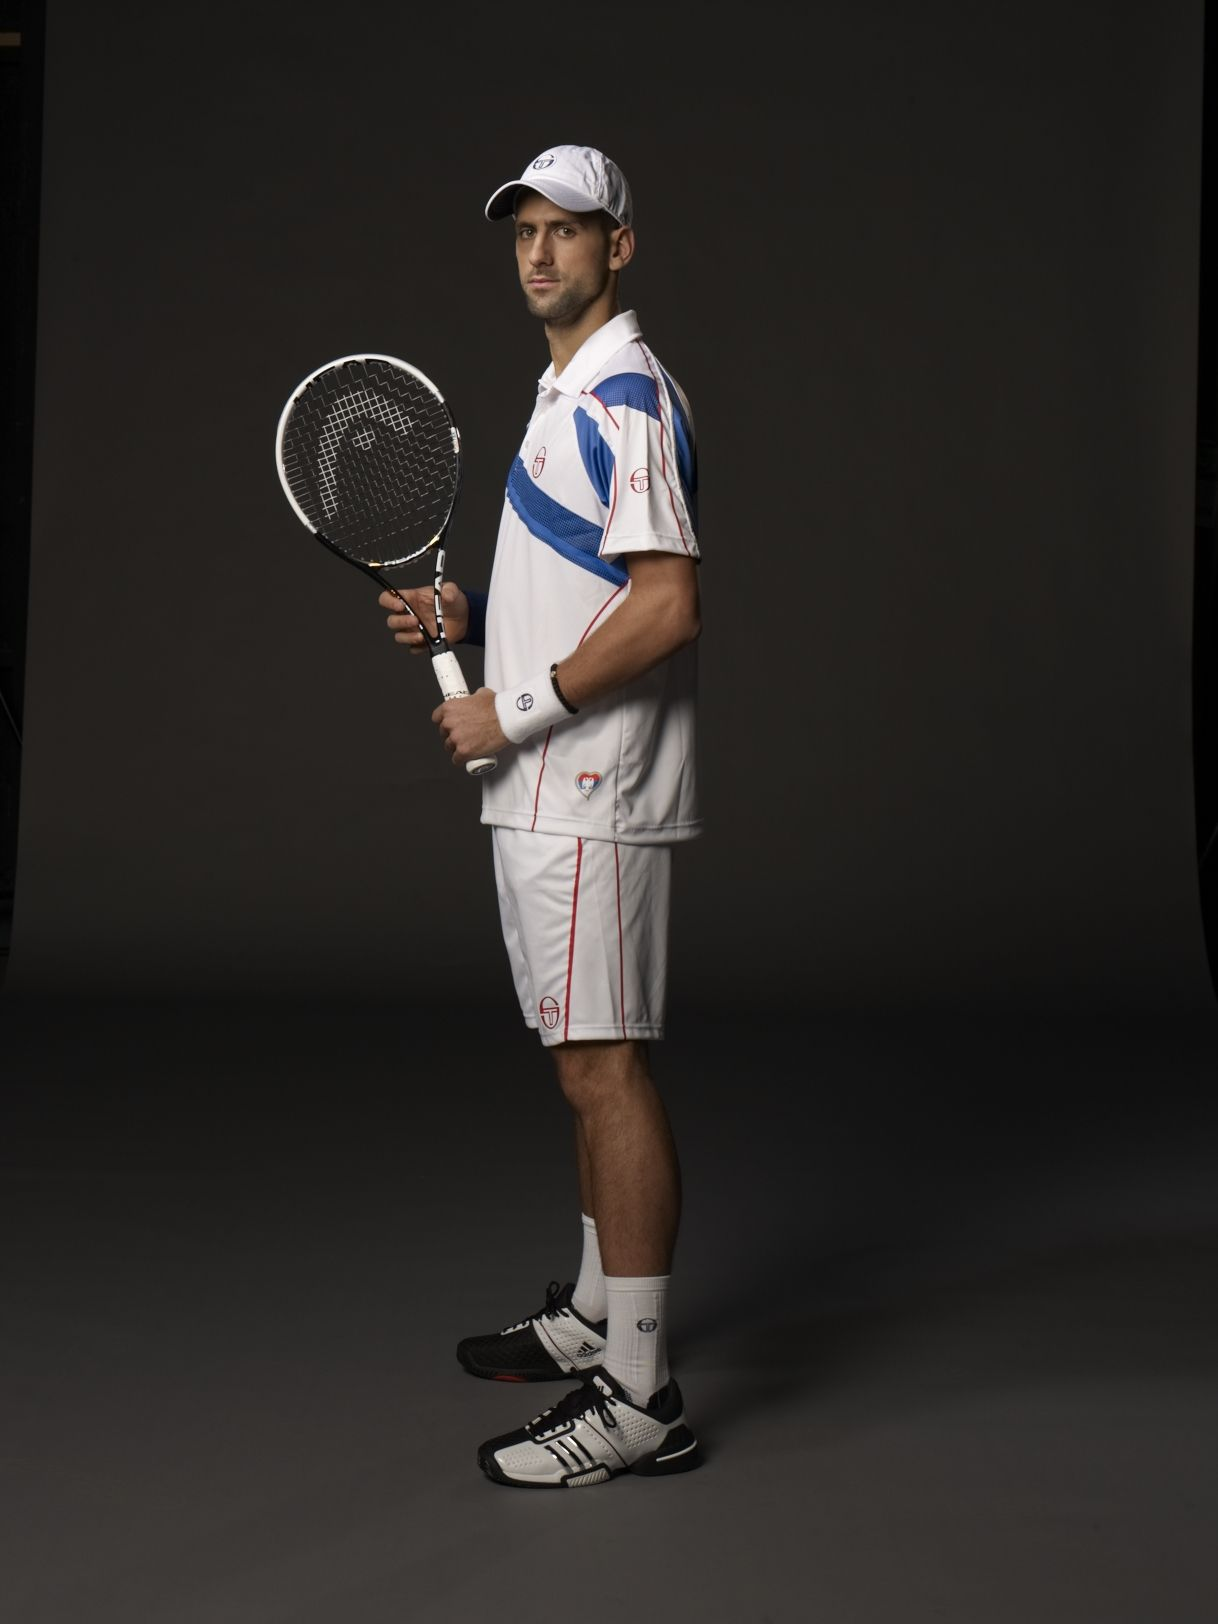 Head WingTennis (With images) Tennis players, Sports